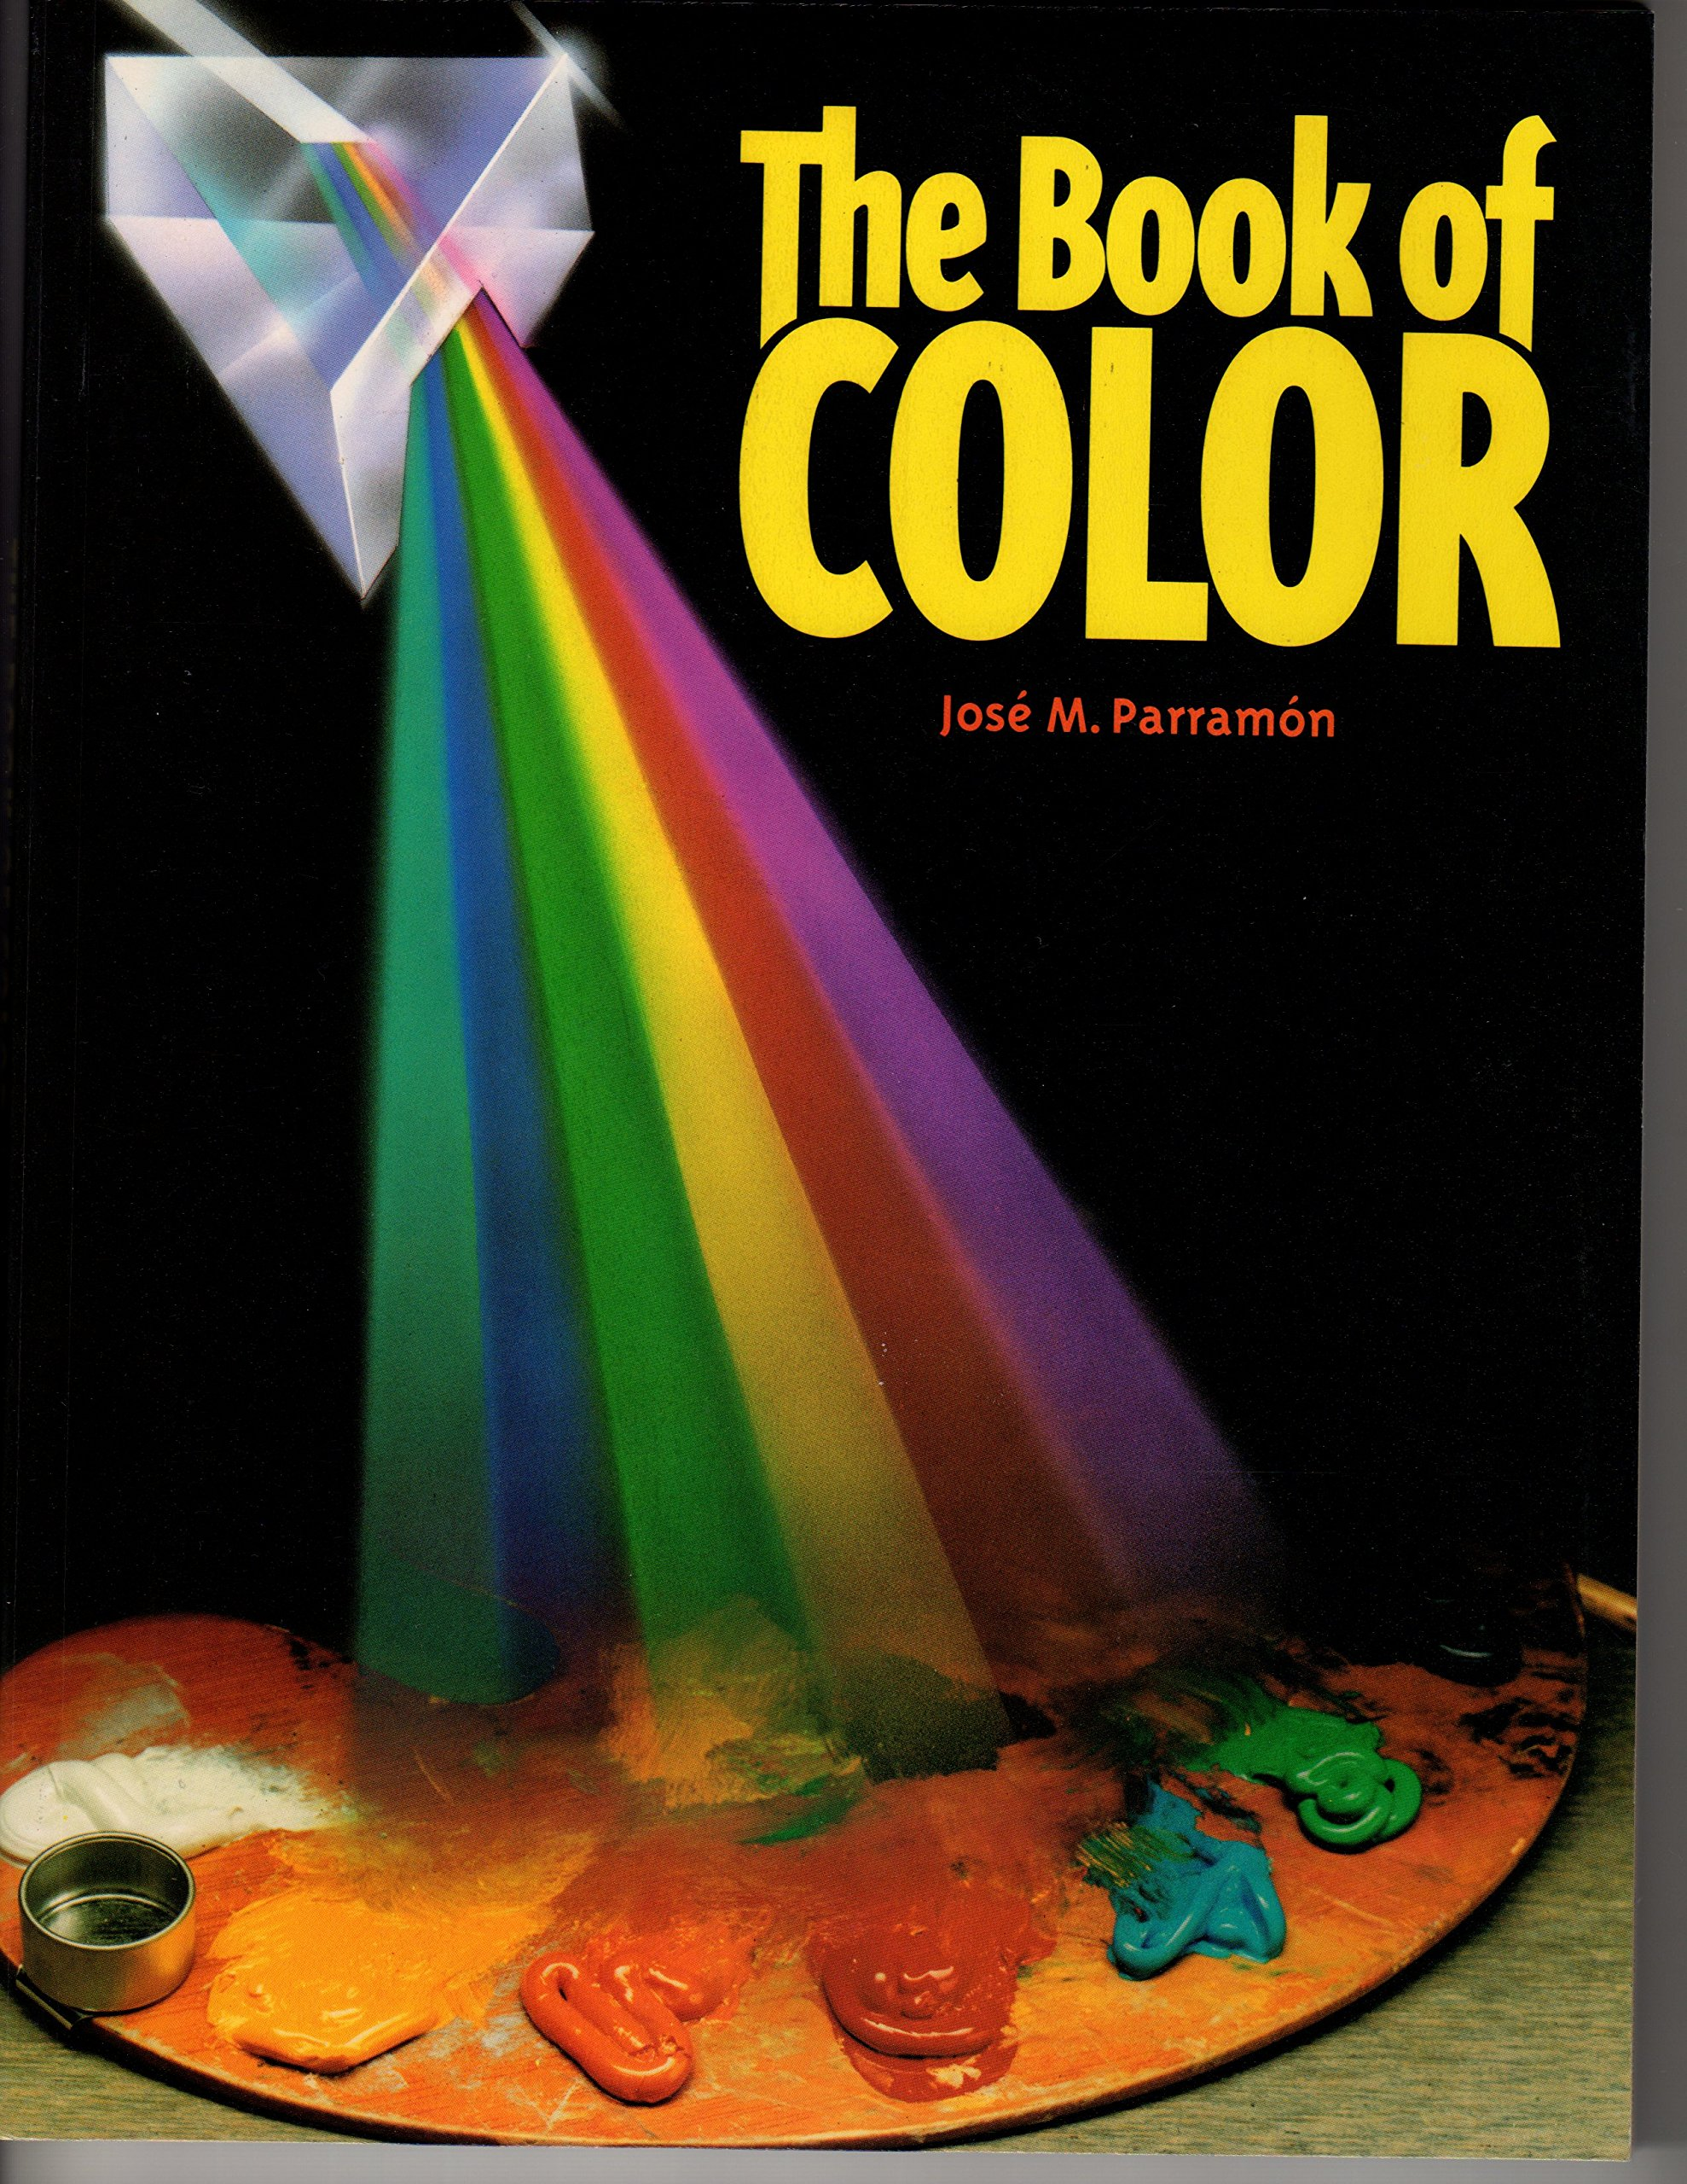 the book of color the history of color color theory and contrast the color of forms and shadows color ranges and mixes and the practice of painting - Color Theory Book